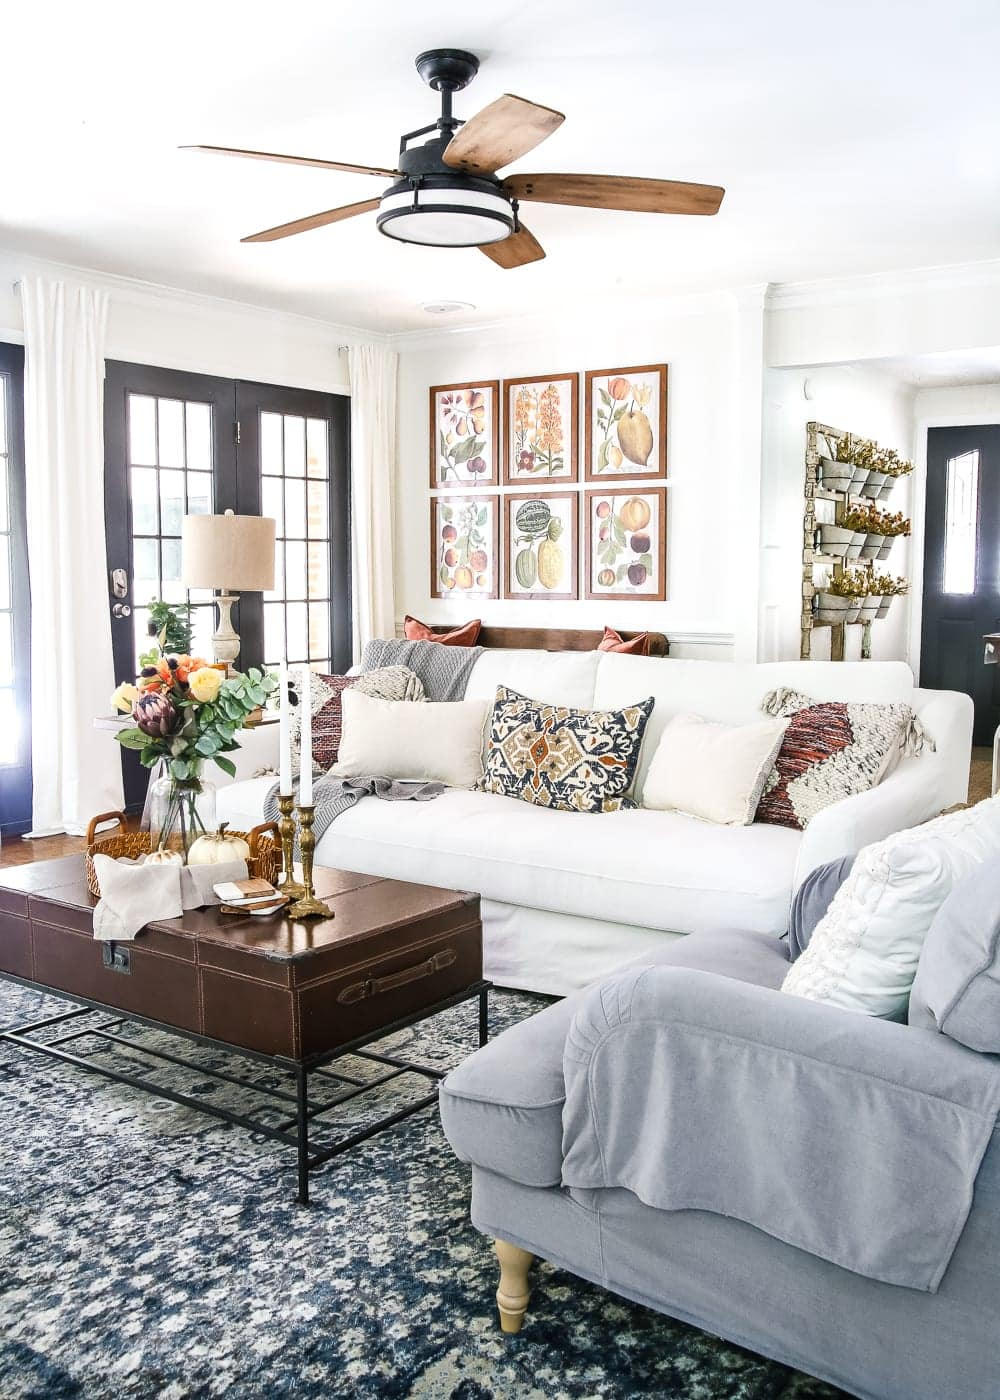 Family Room Design Ideas On A Budget: 8 Fall Decorating Tips For A Budget And Fall Home Tour